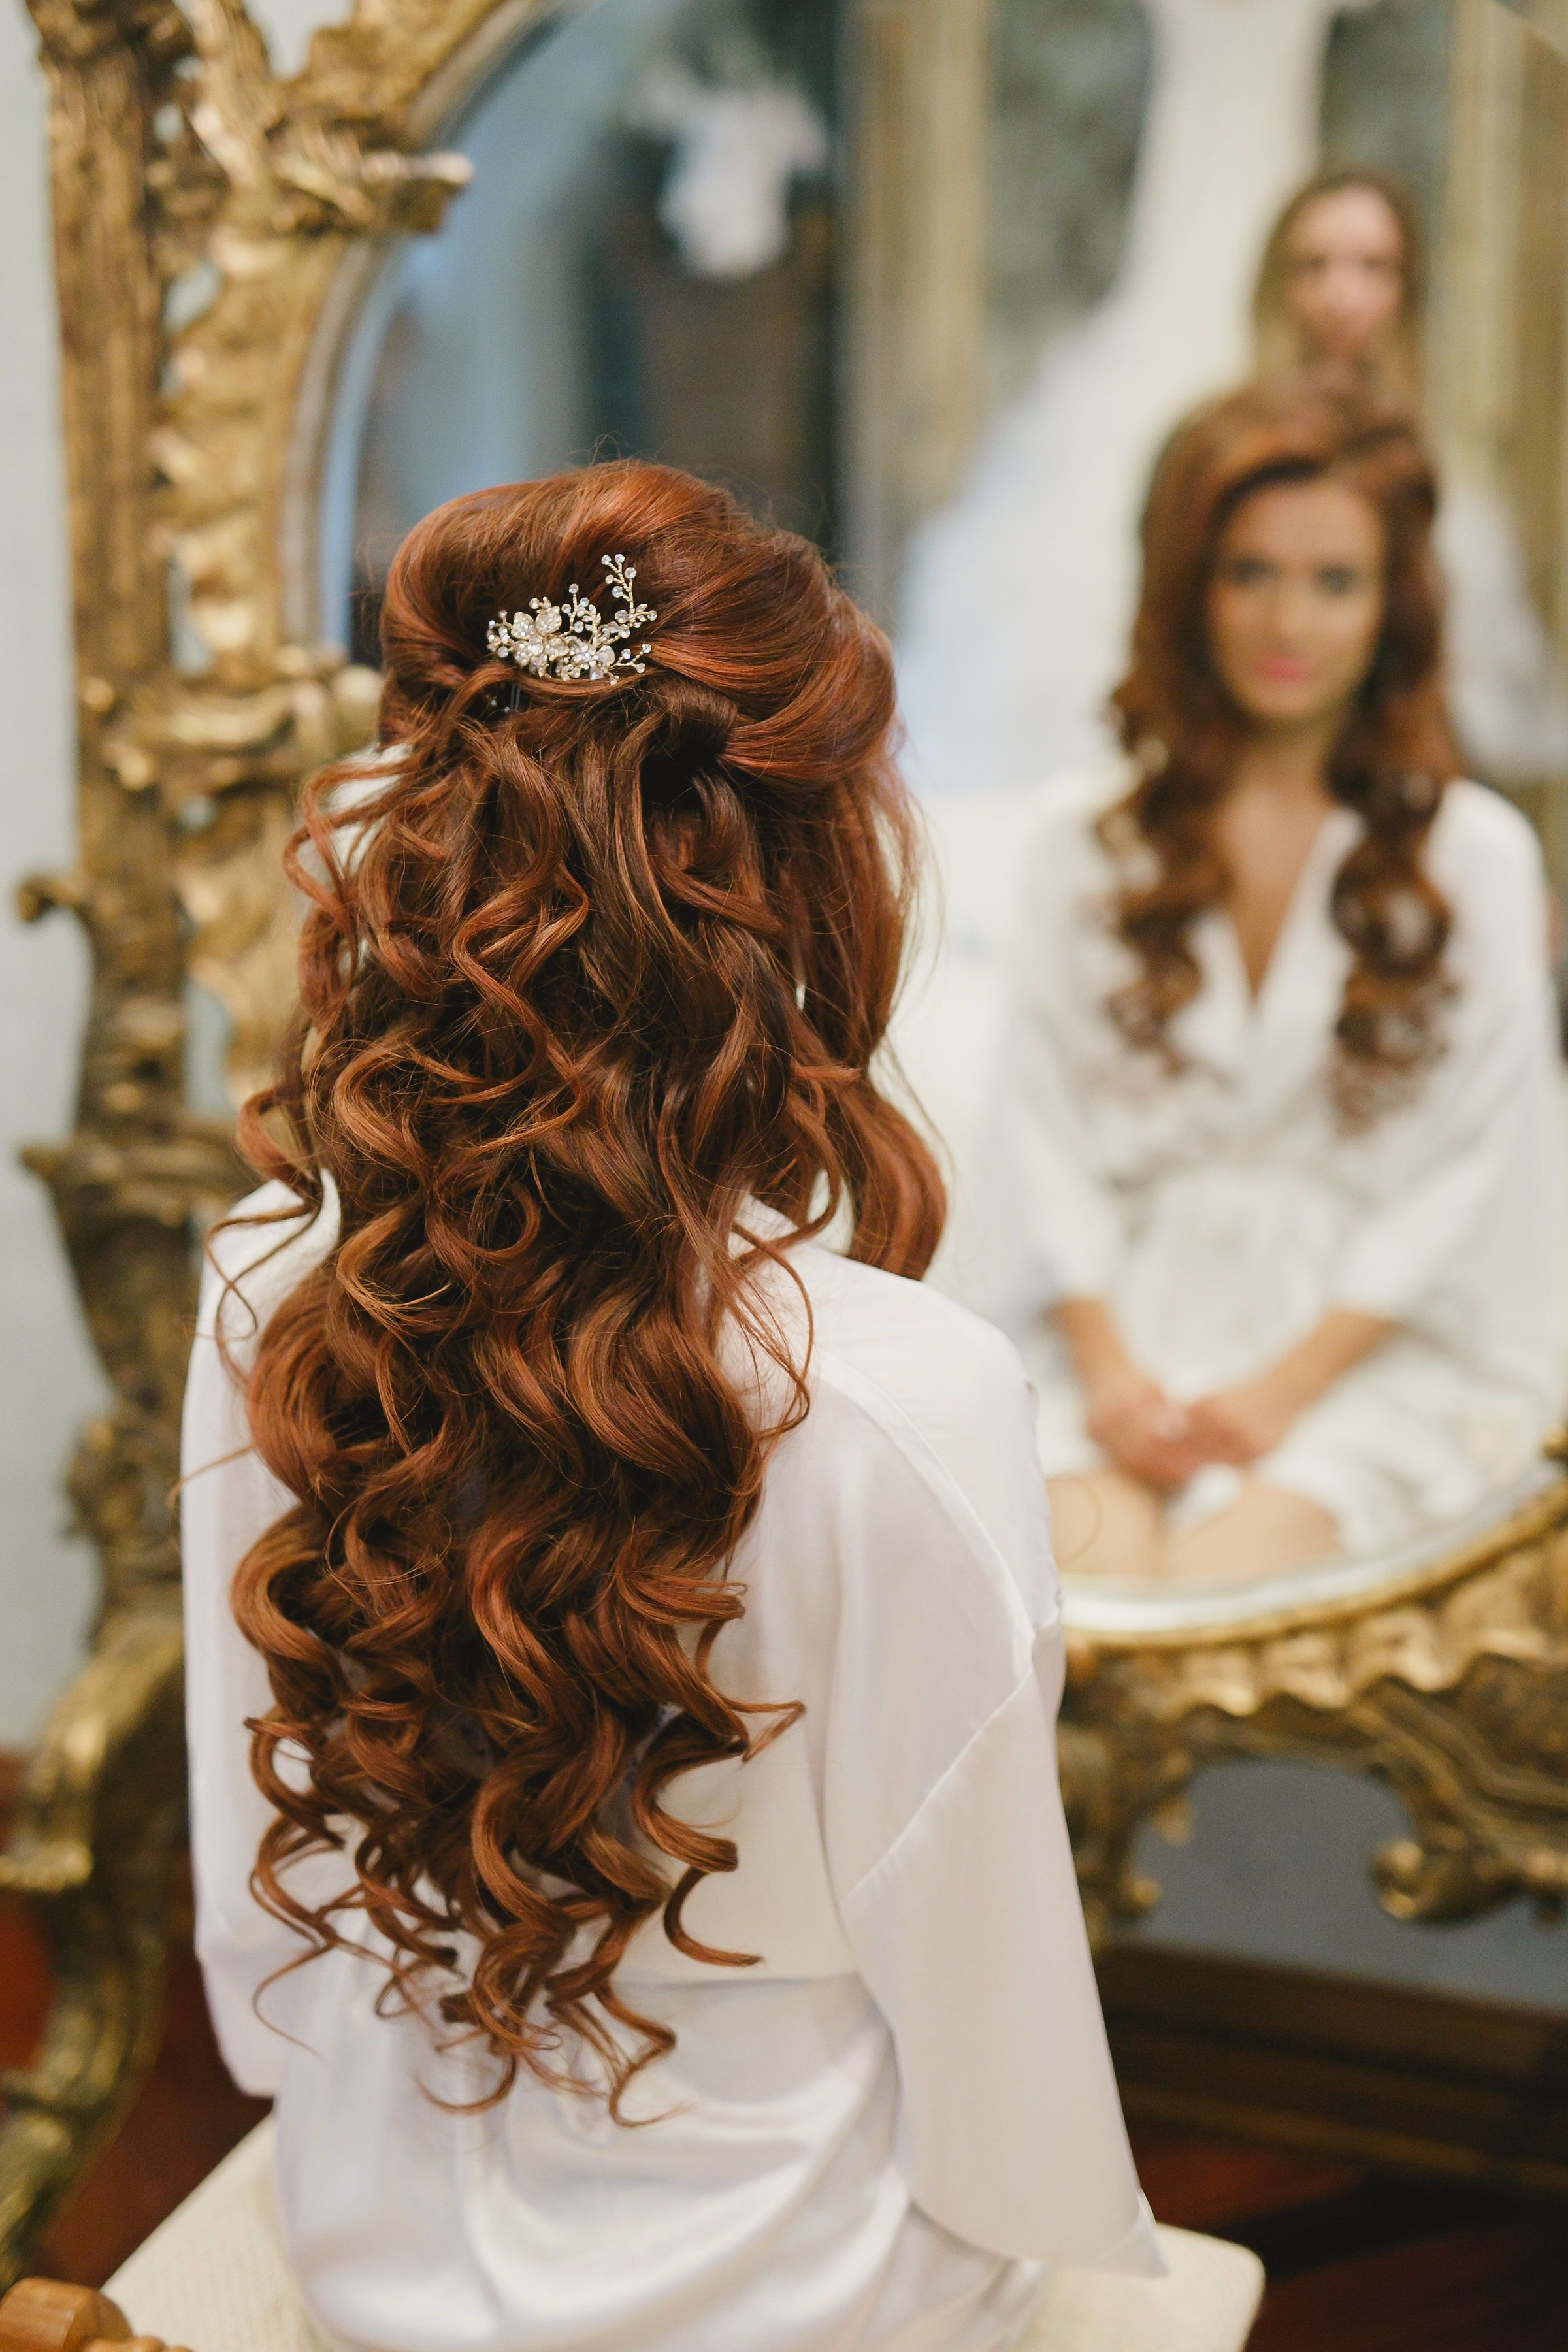 Half Up Half Down Wedding Hair Bridal Hairstyle For Long Hair Curled Hair With Lots Wedding Hairstyles For Long Hair Curled Wedding Hair Curls For Long Hair